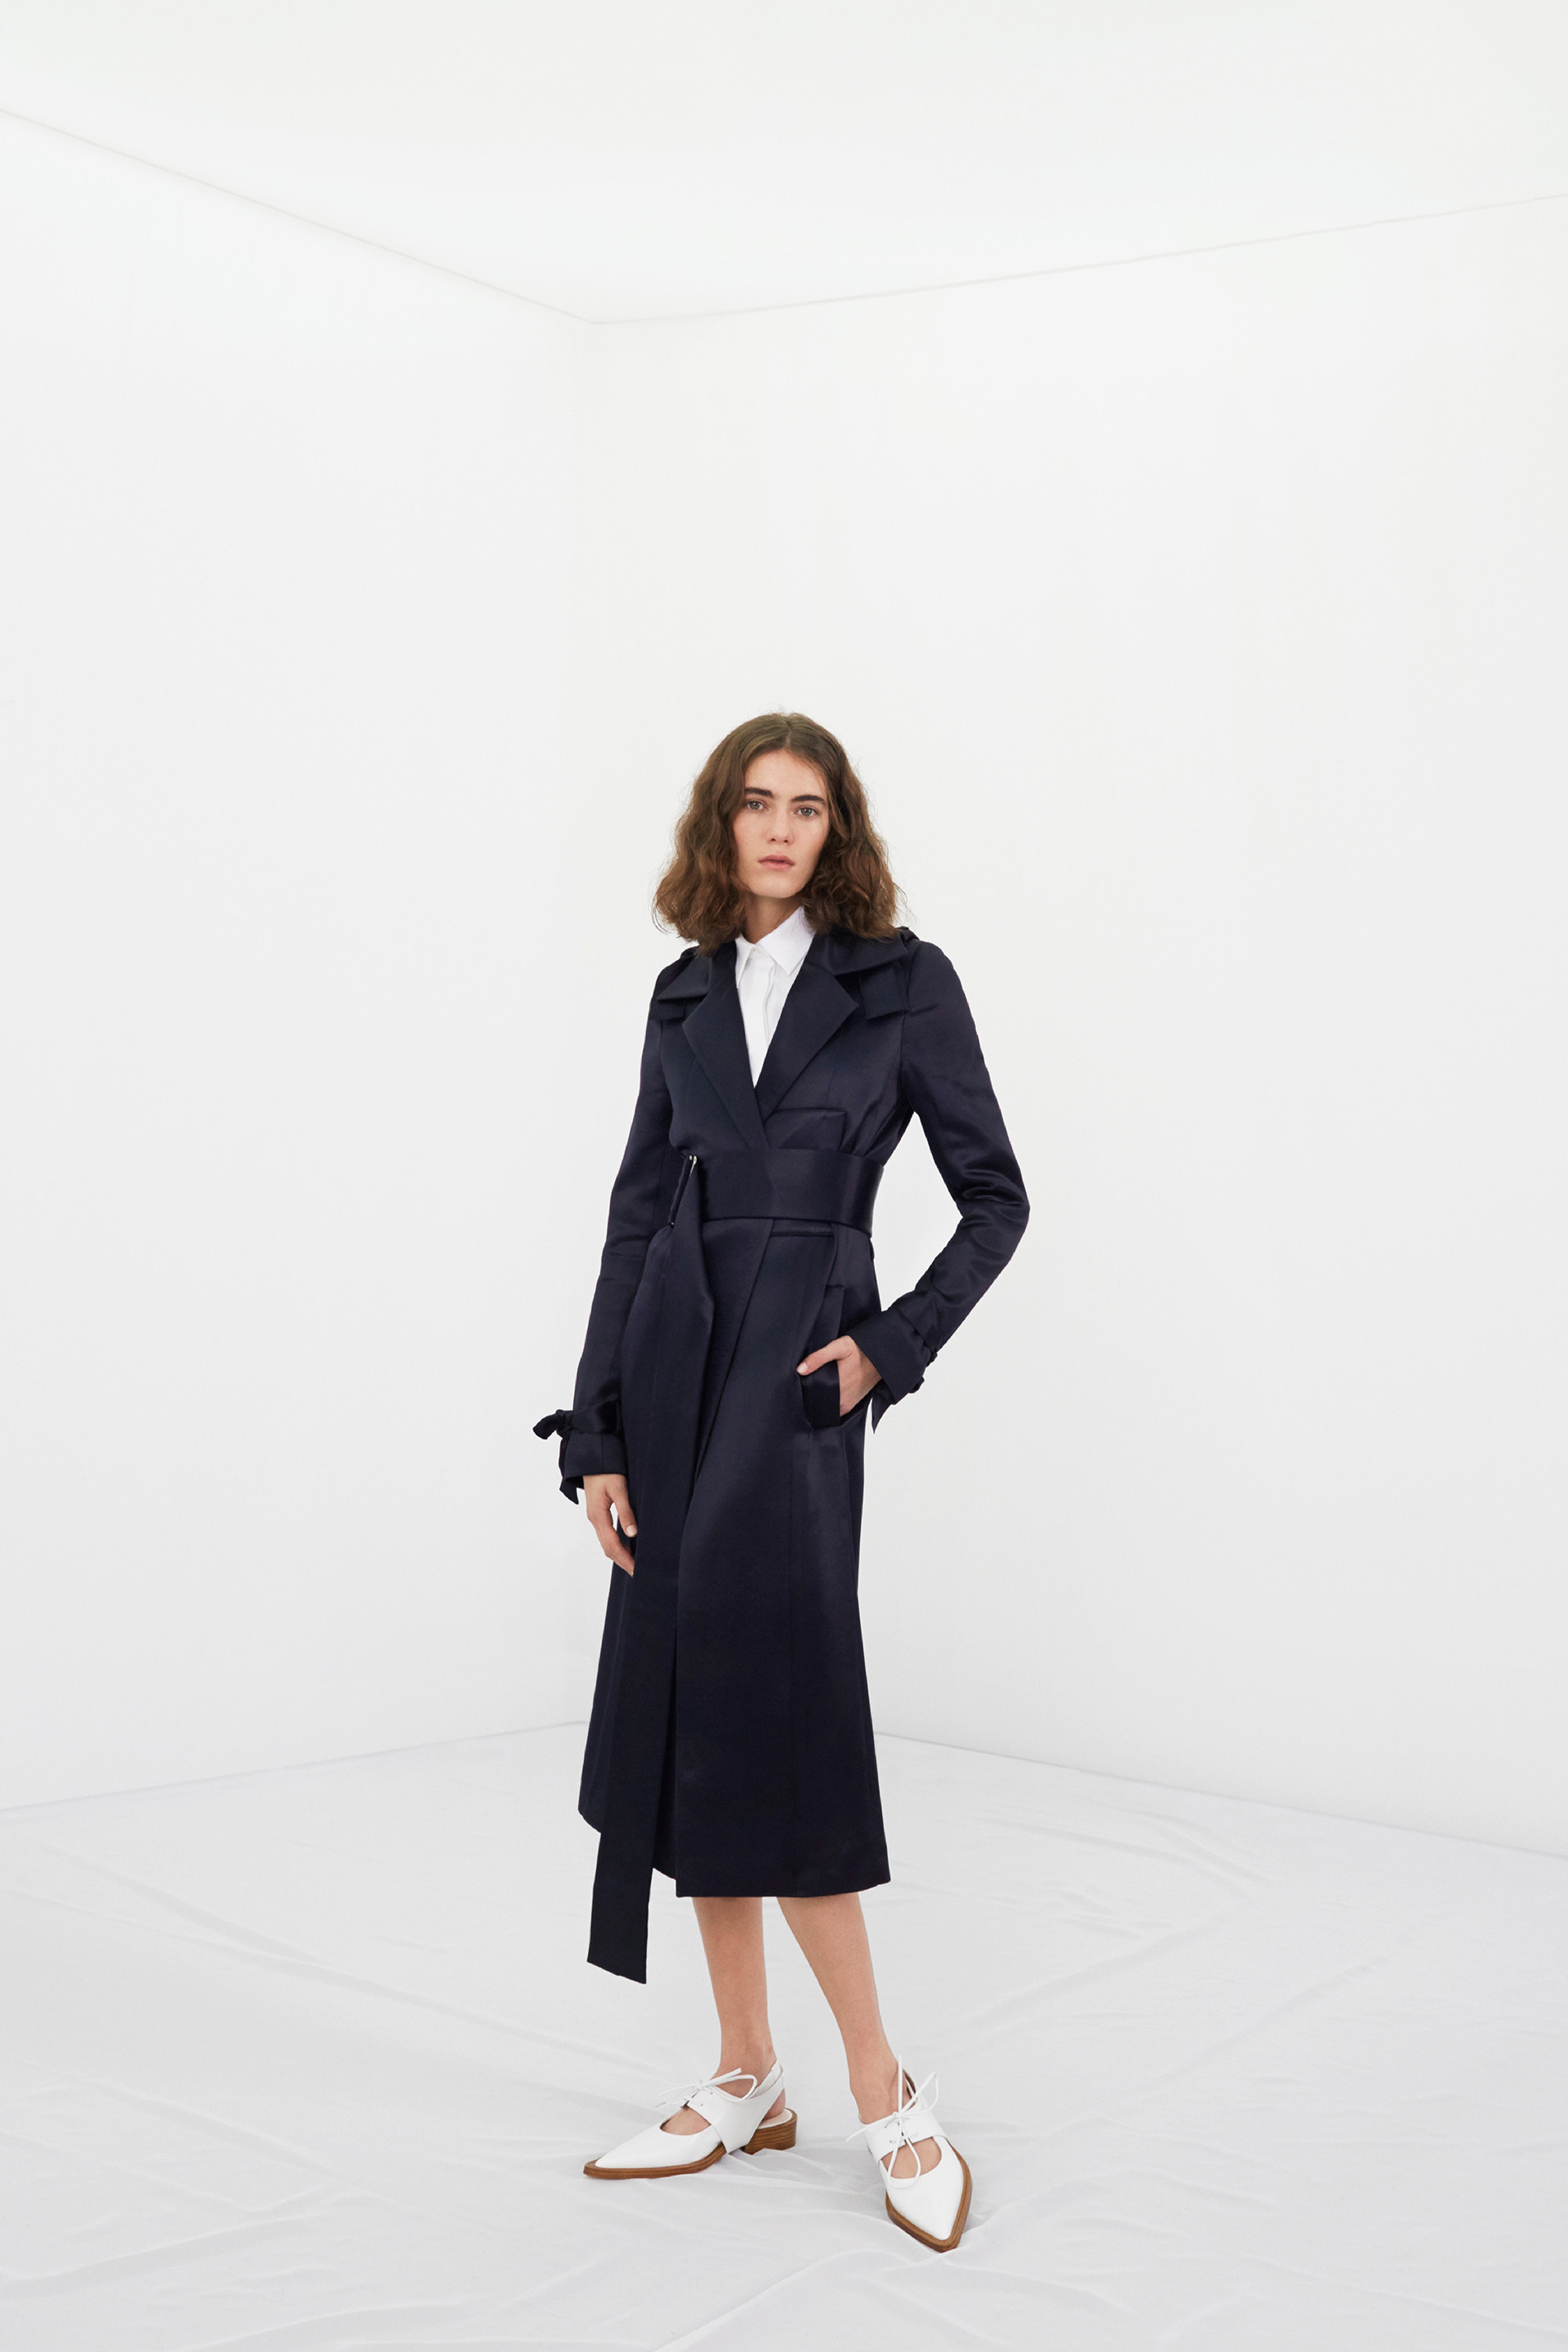 victoria-beckham-pre-fall-2016-lookbook-13.jpg